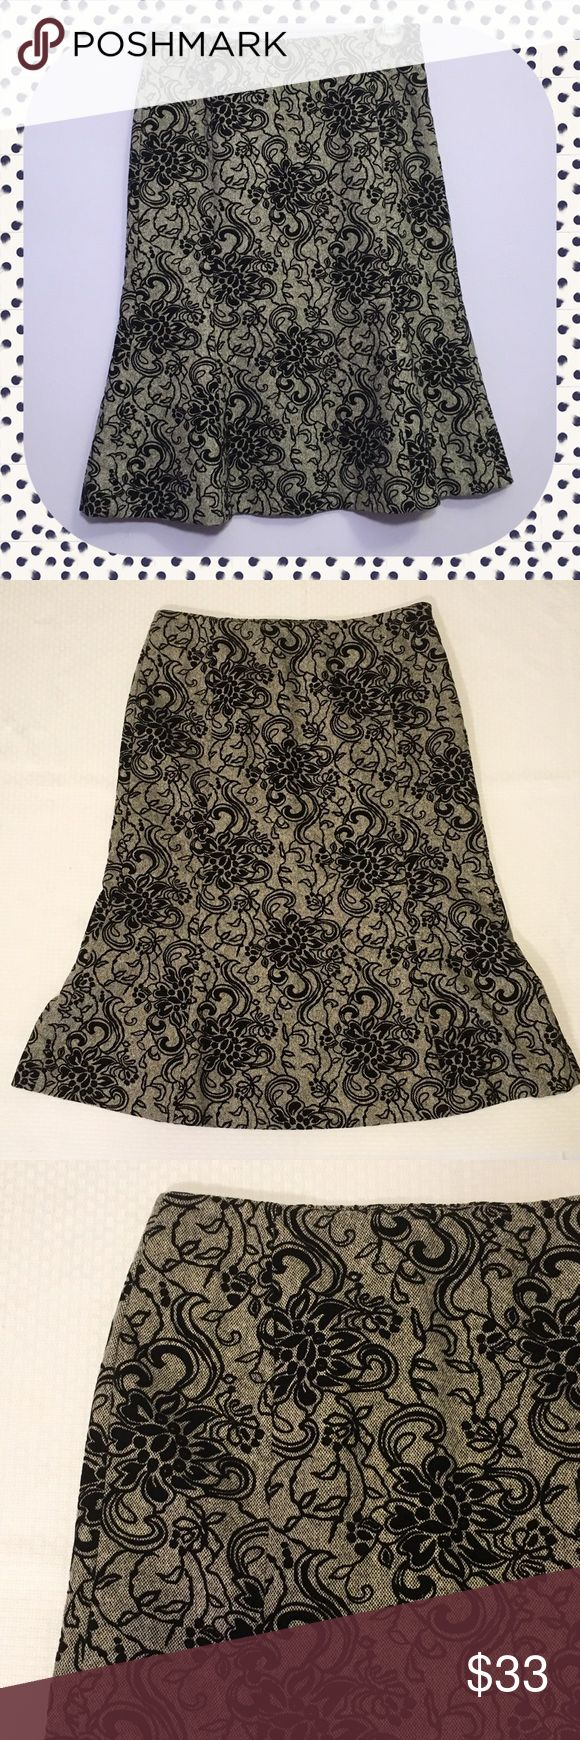 ⭐️NEW⭐️LOFT embroidered trumpet skirt Beautiful loft embroidered trumpet skirt.                                    All prices are negotiable so 💕Make offers💕 🚫No trades🚫 LOFT Skirts